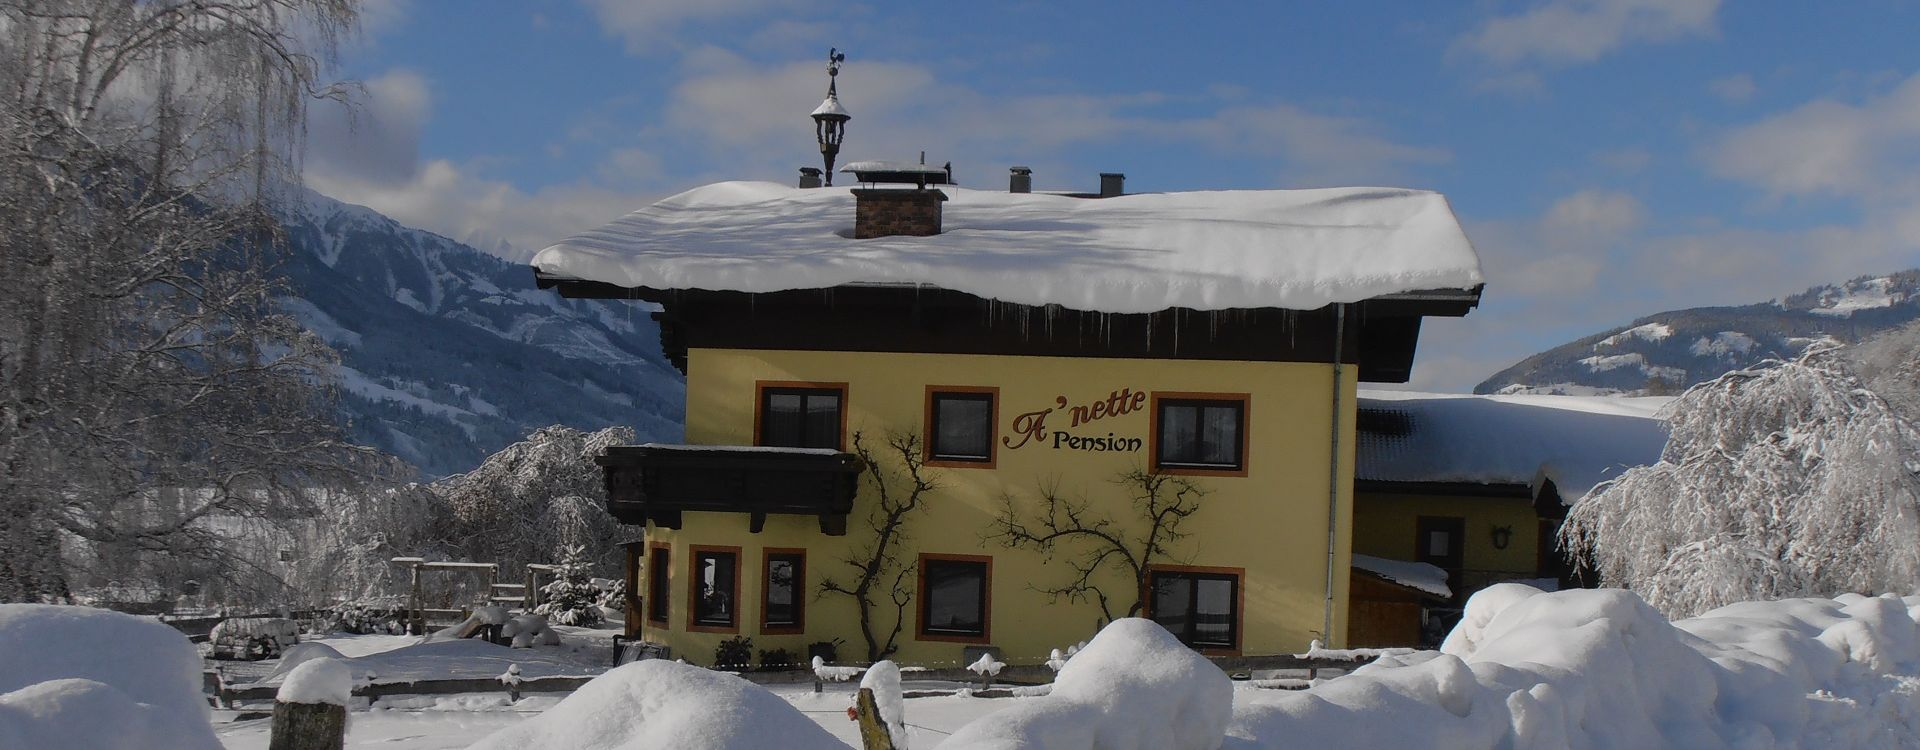 Winterurlaub in Kaprun